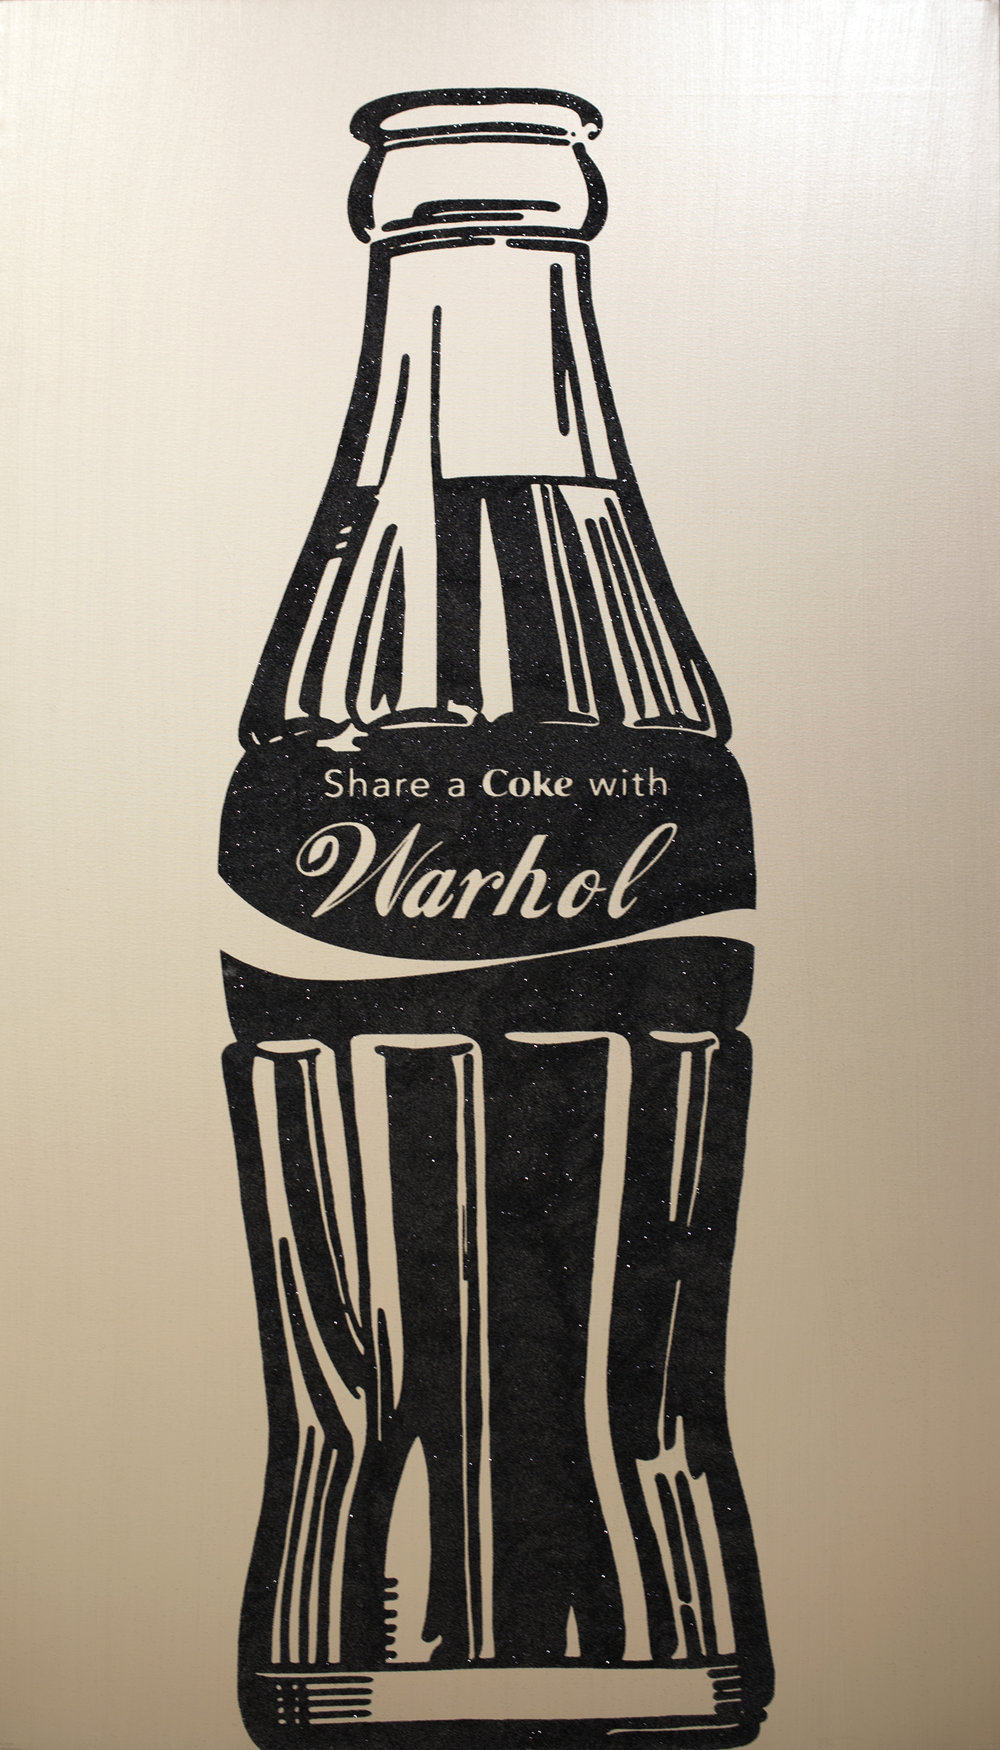 SHARE A COKE Warhol, Silver                by Knowledge Bennett 84 x 48 inches